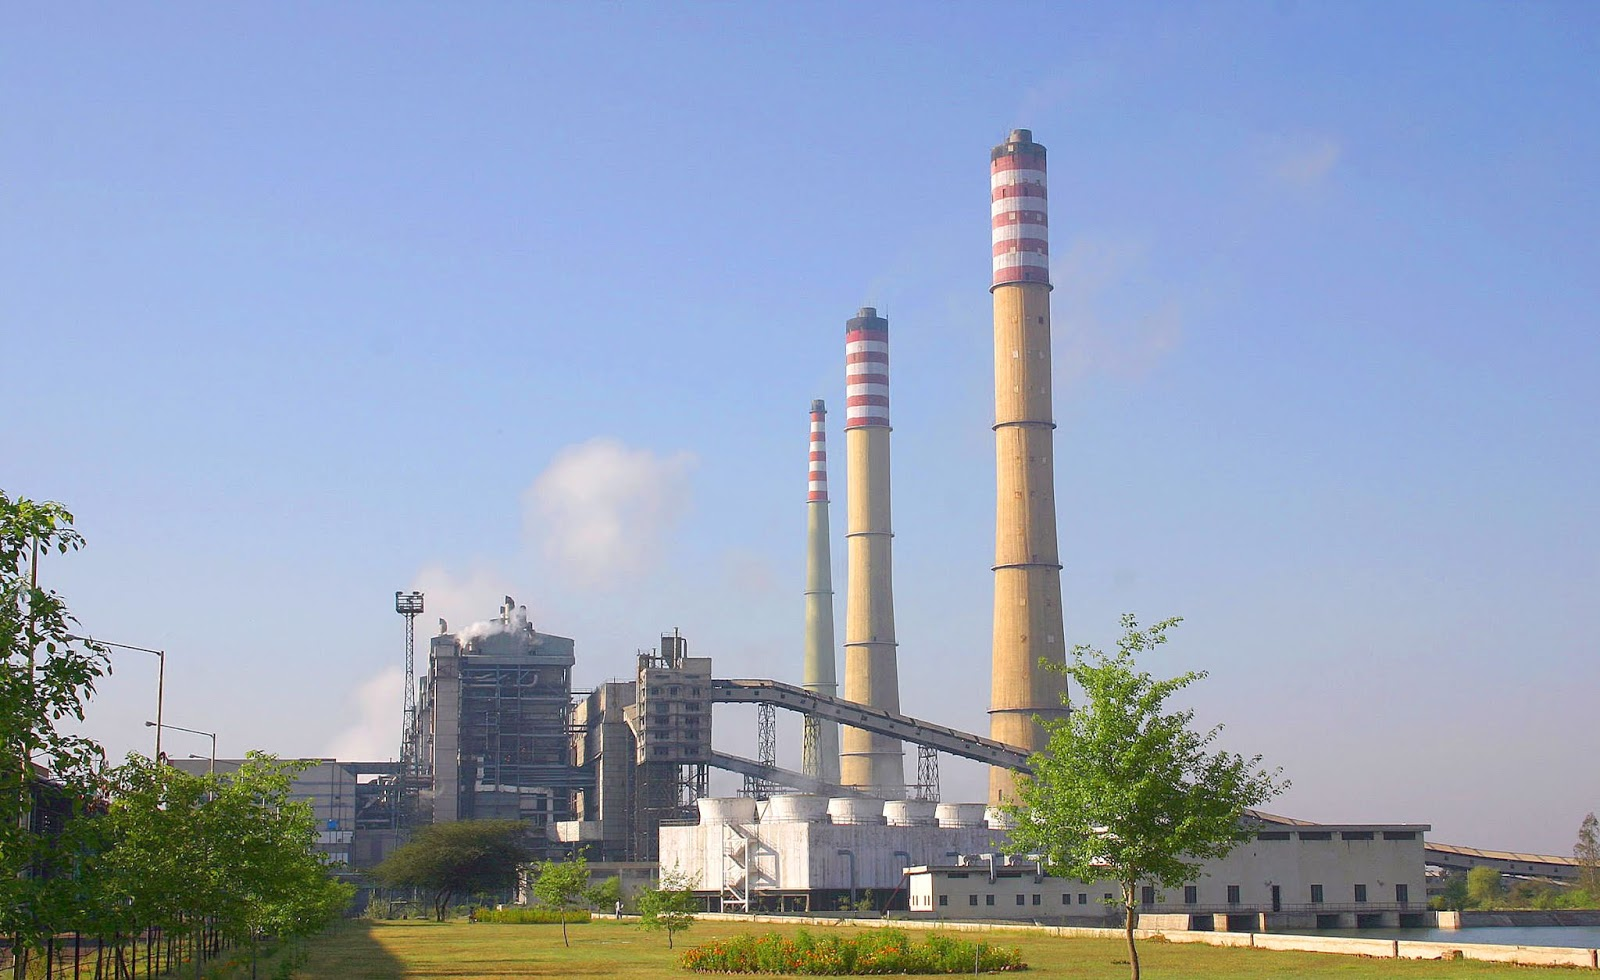 Facts about Suratgarh Super Thermal Power Plant